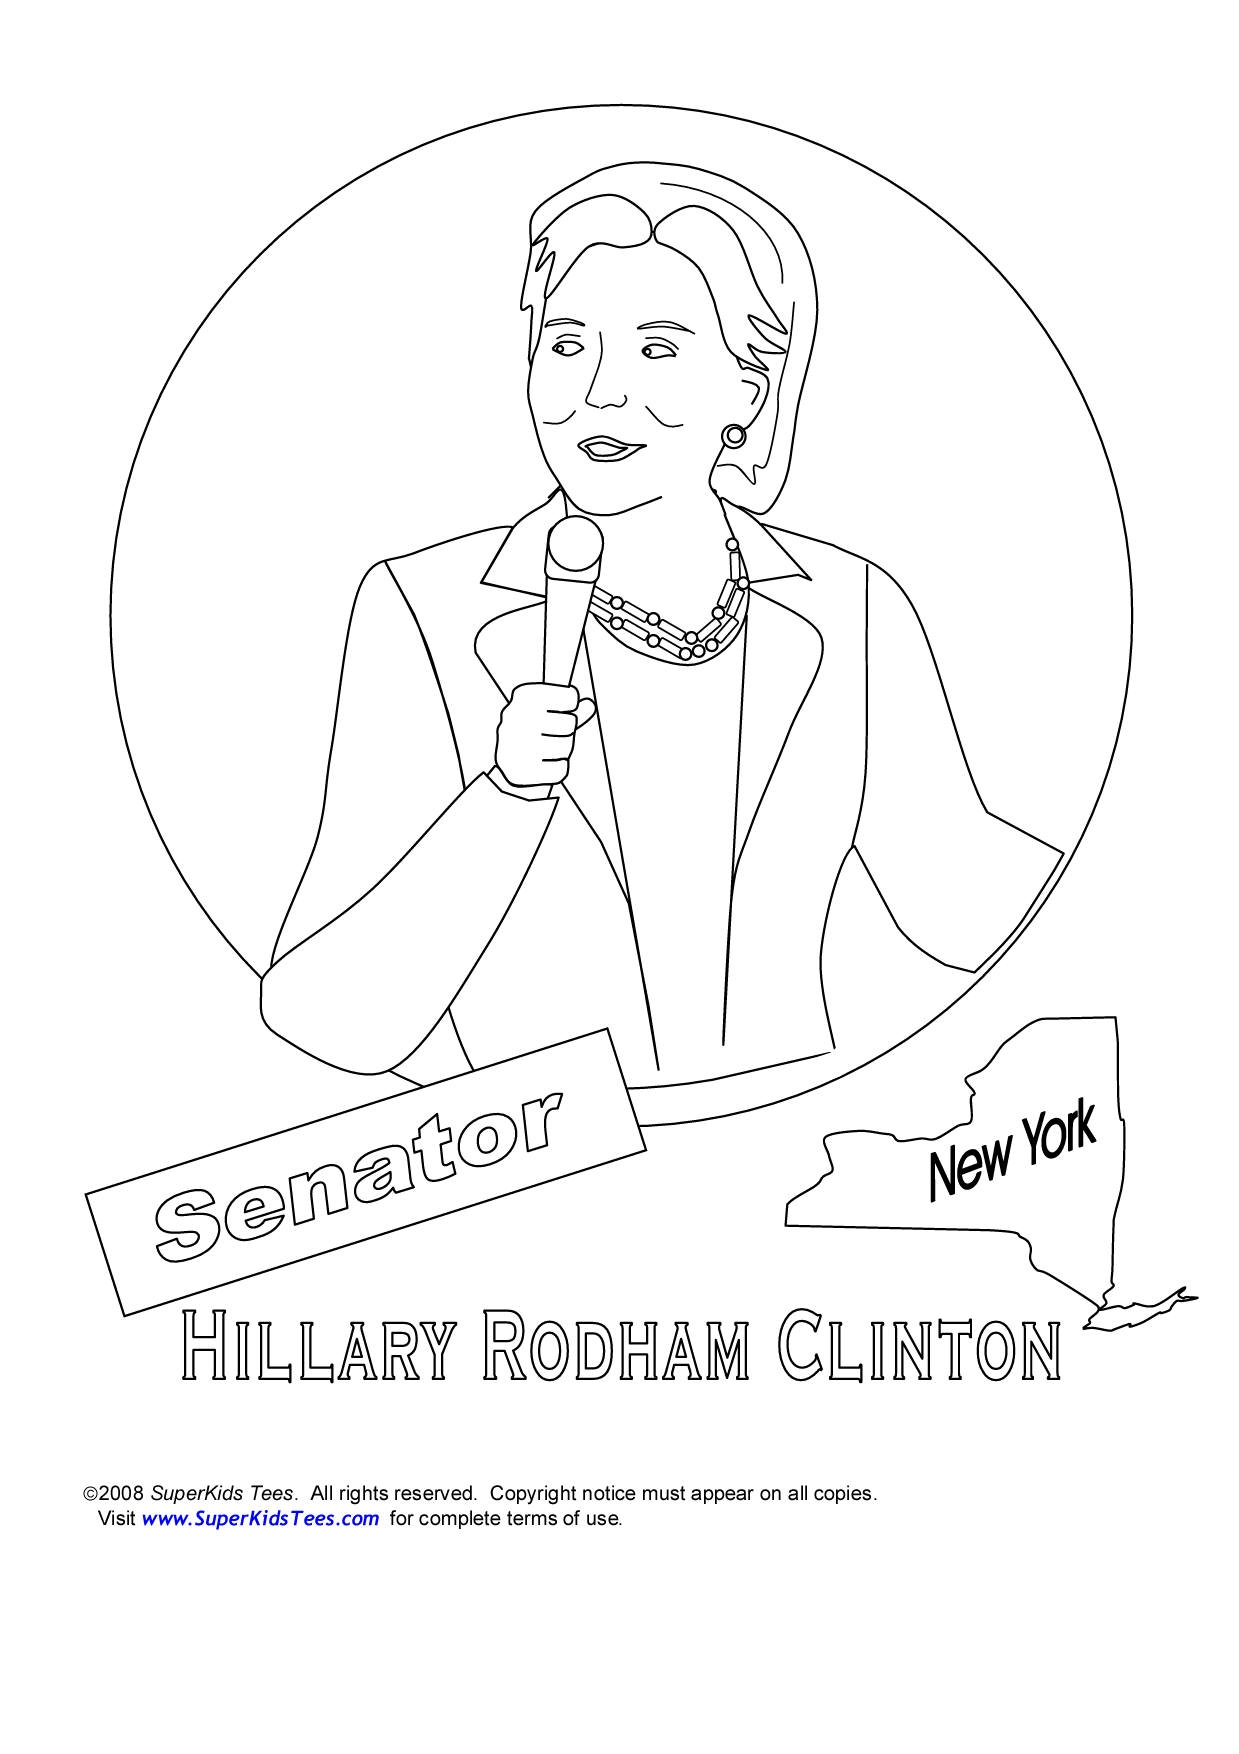 Hillary Clinton Coloring Pages Collection to Print Of Funny Hillary Clinton Meme Coloring Page for Adults Hilarious Gallery